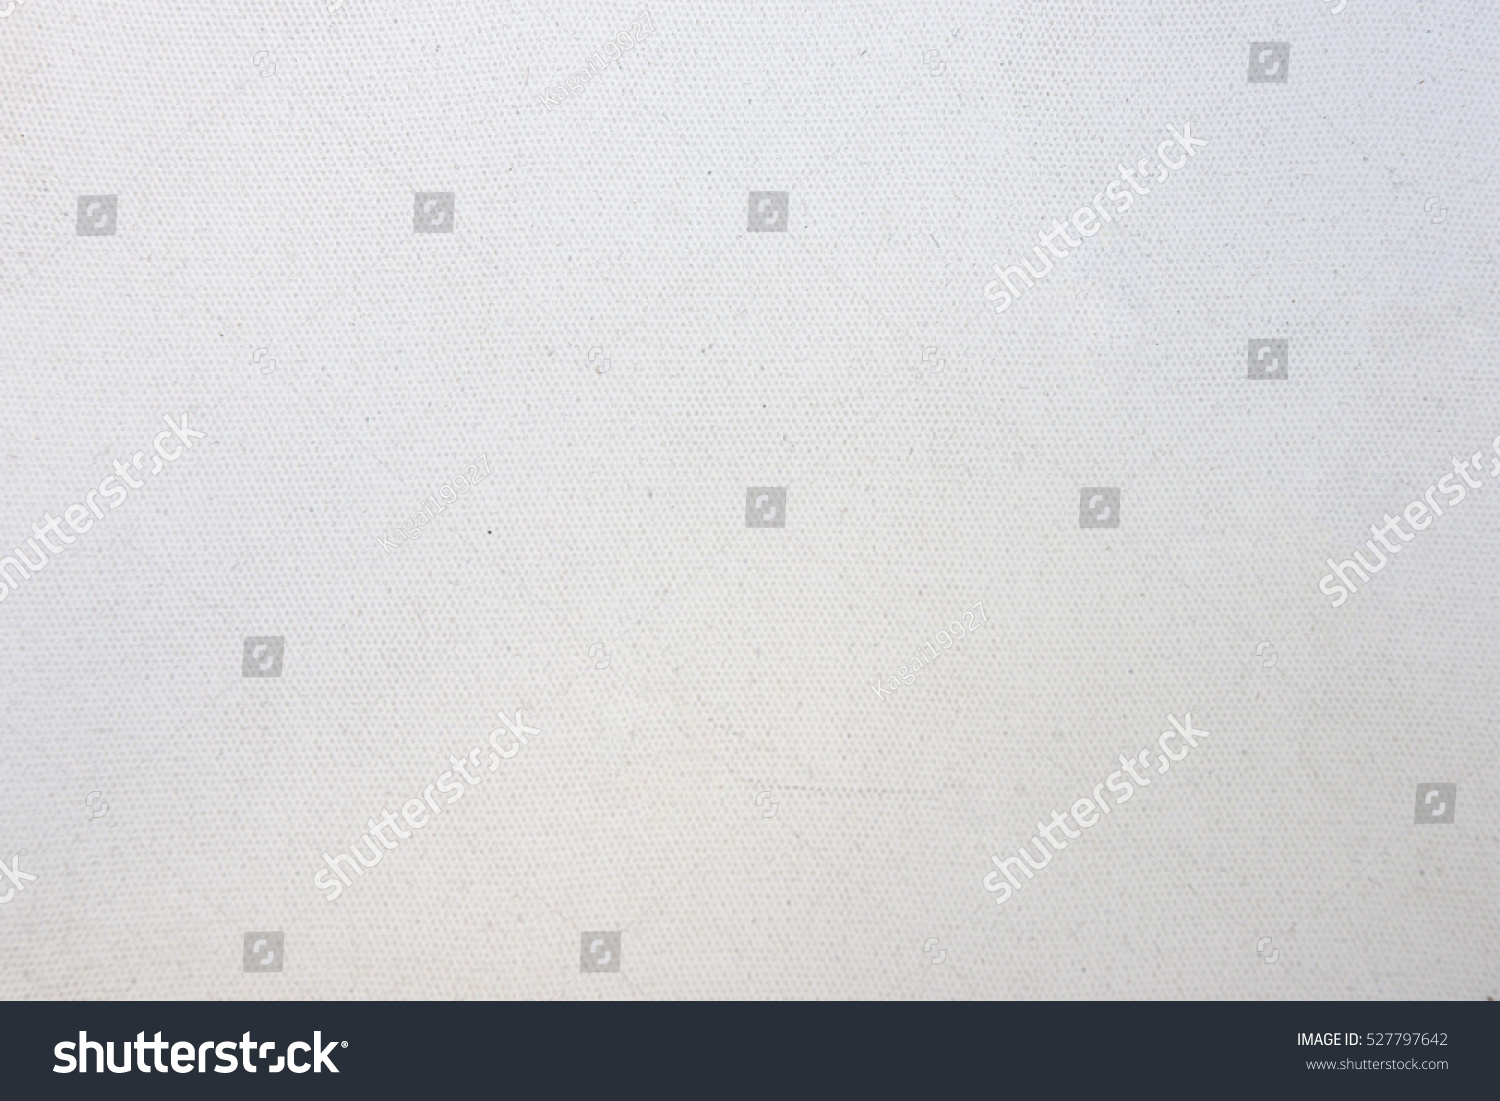 White Paper Texture Background Space Blank Stock Photo ...